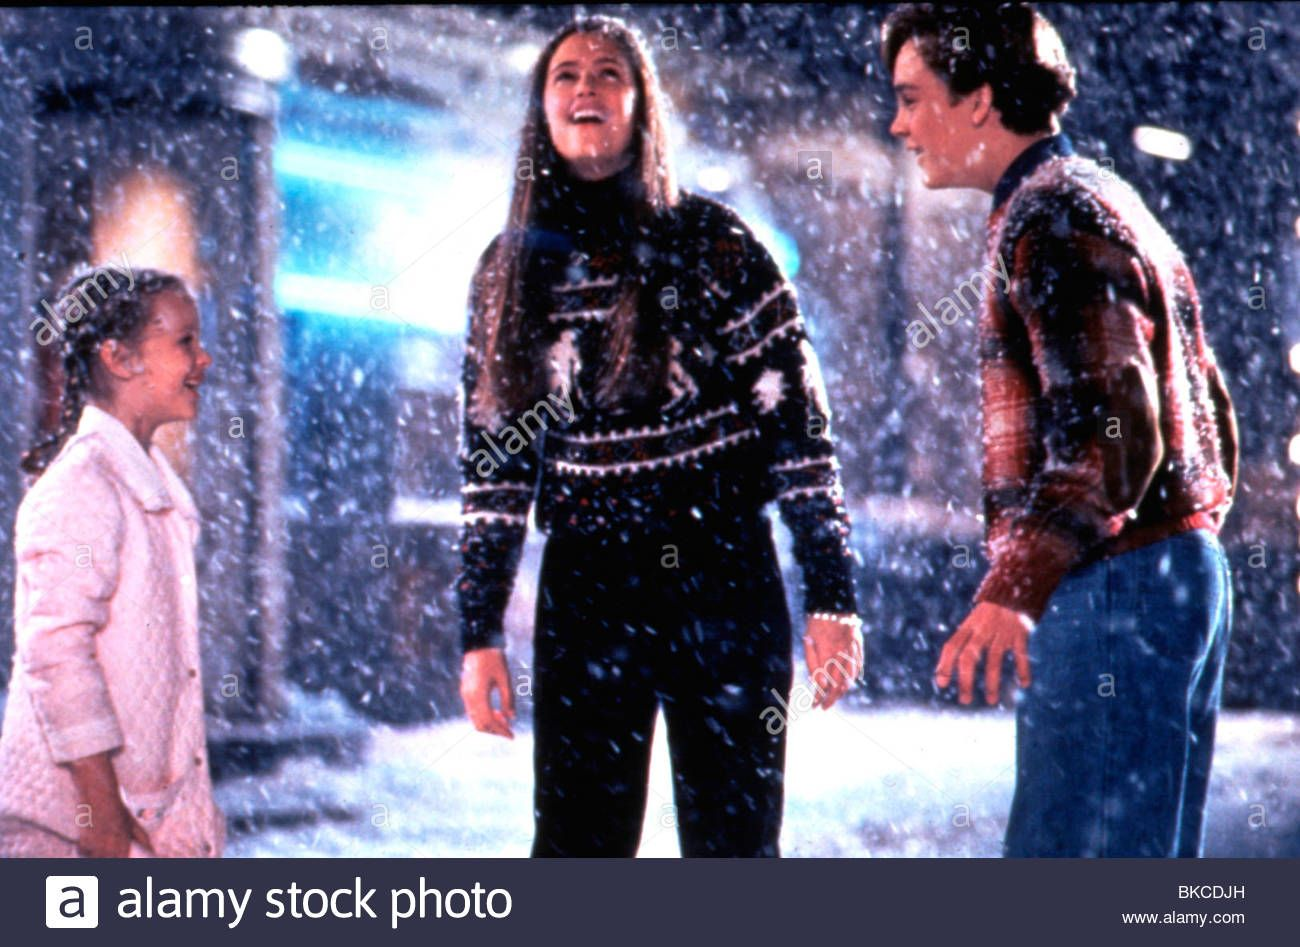 Download This Stock Image All I Want For Christmas 1991 Thora Birch Elizabeth Cherney Ethan Embry Alwc 012 Bkcdjh From Al Photo Stock Photos Ethan Embry